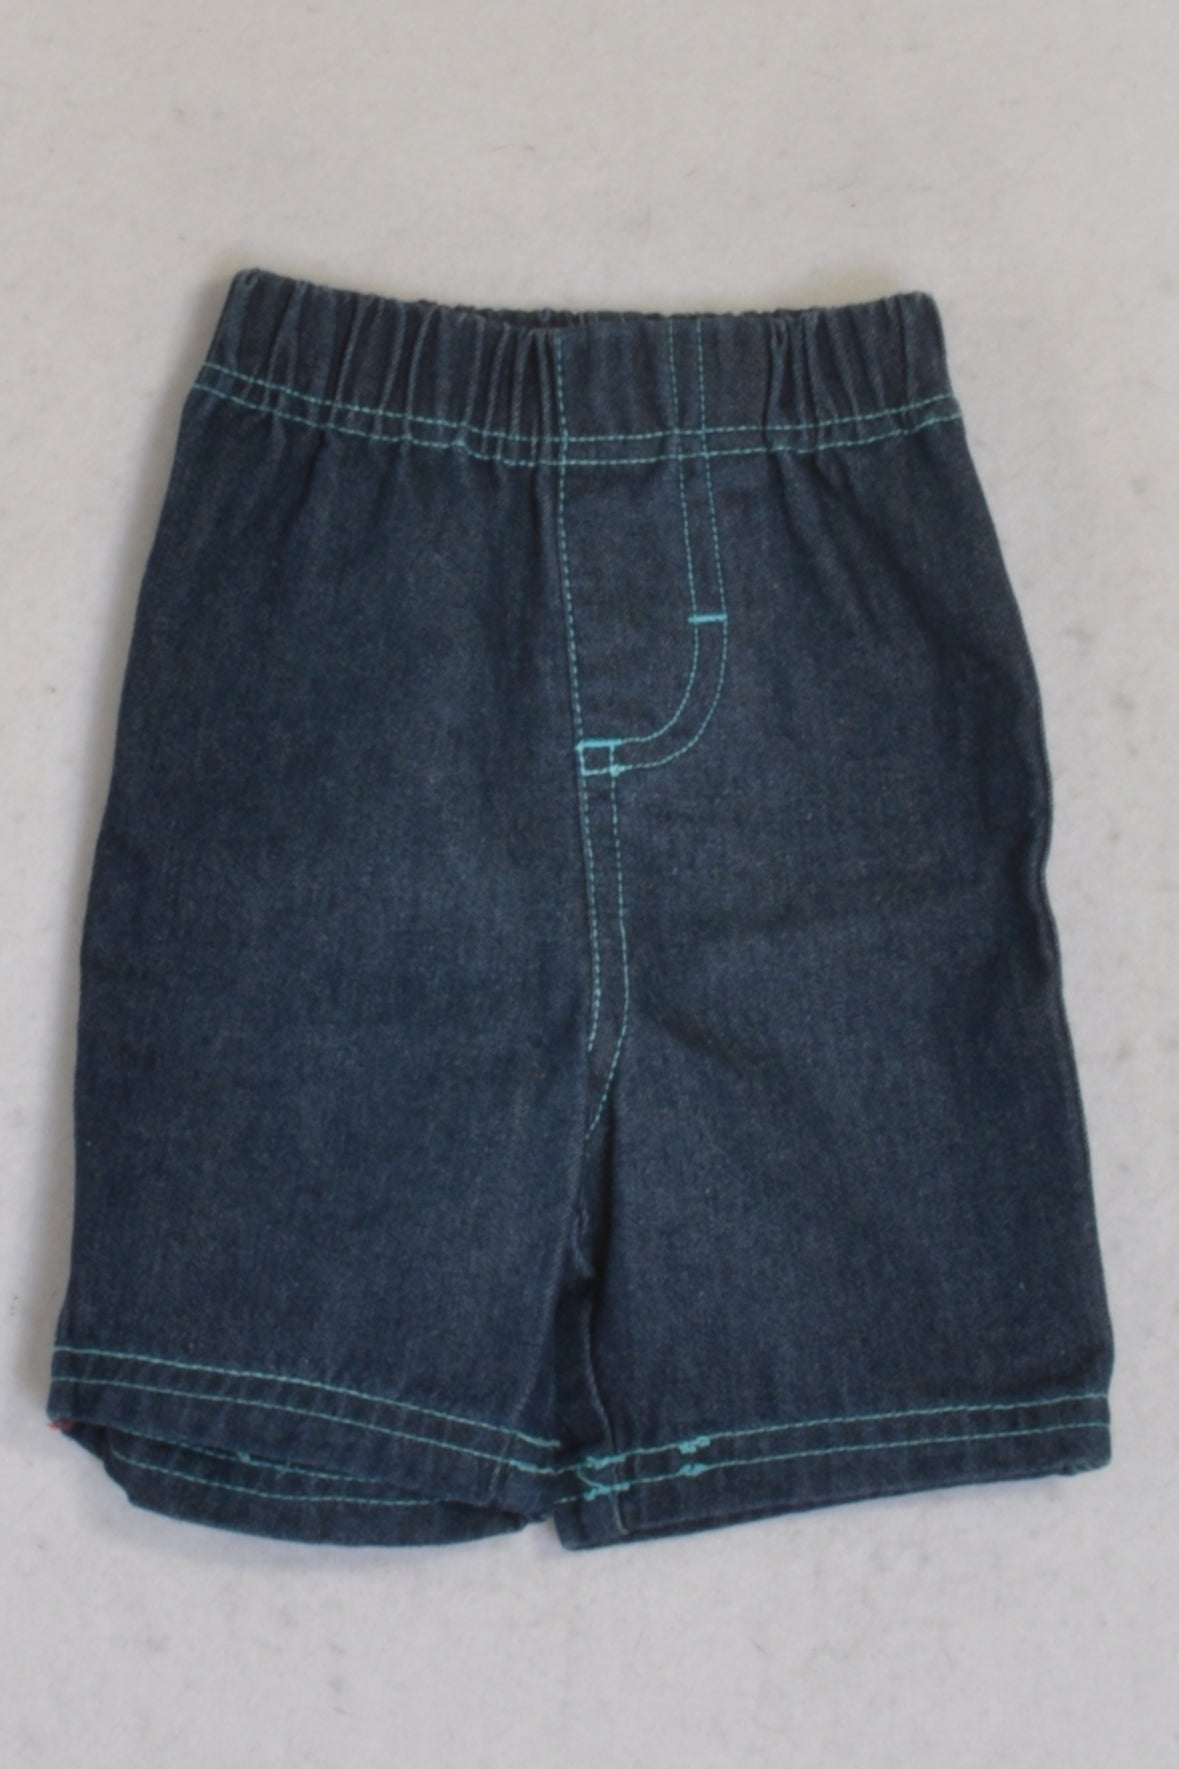 Ackermans Denim Jean Shorts Boys 3-6 months